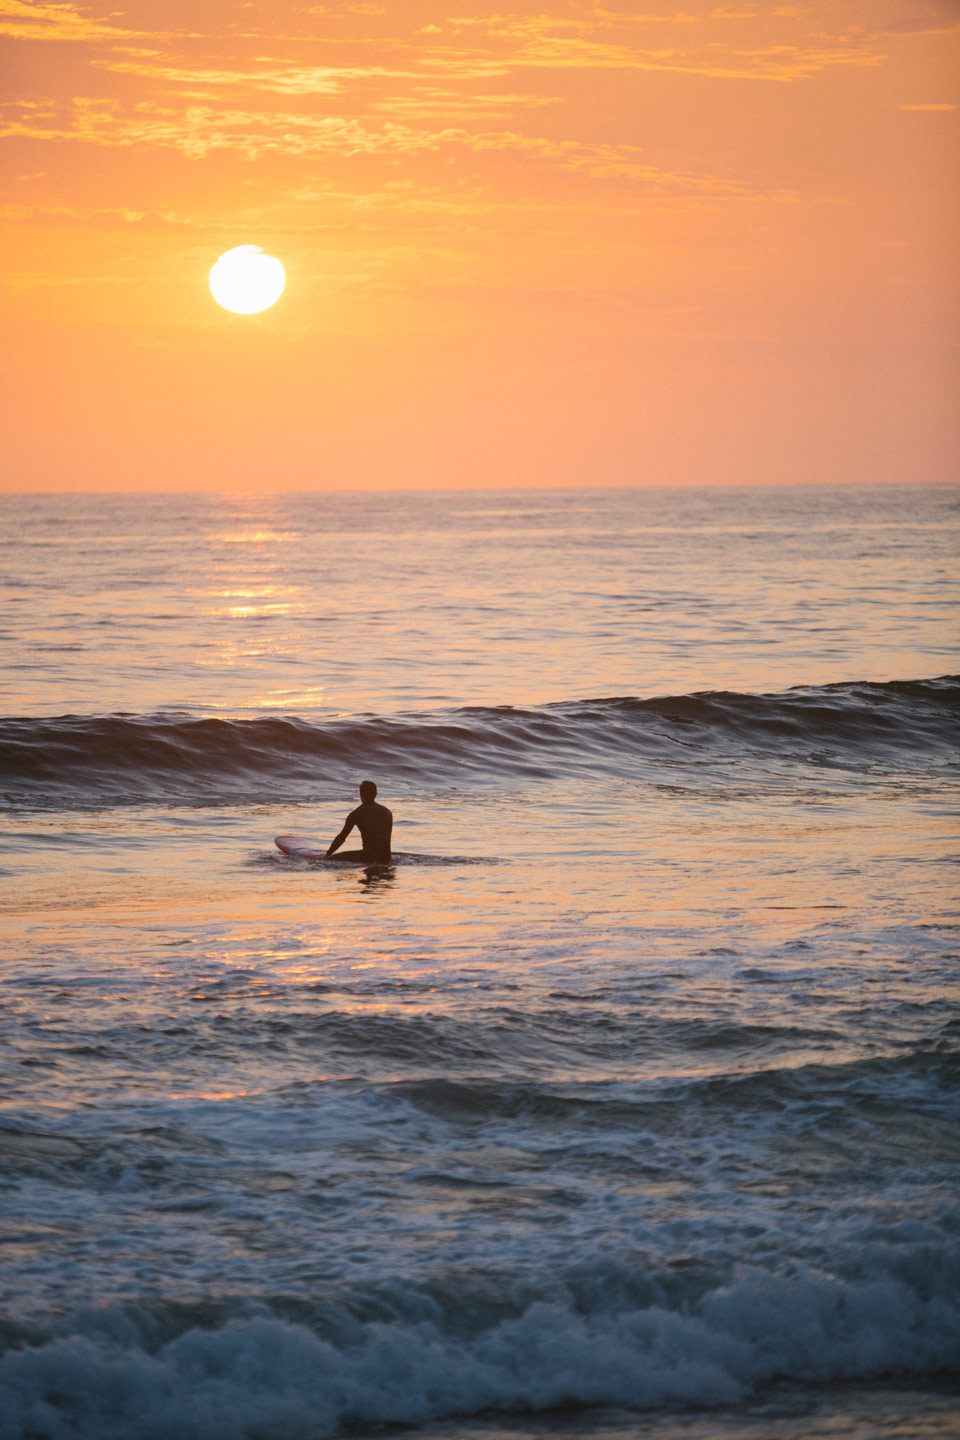 surfer in the waves at sunset at the beach in del mar